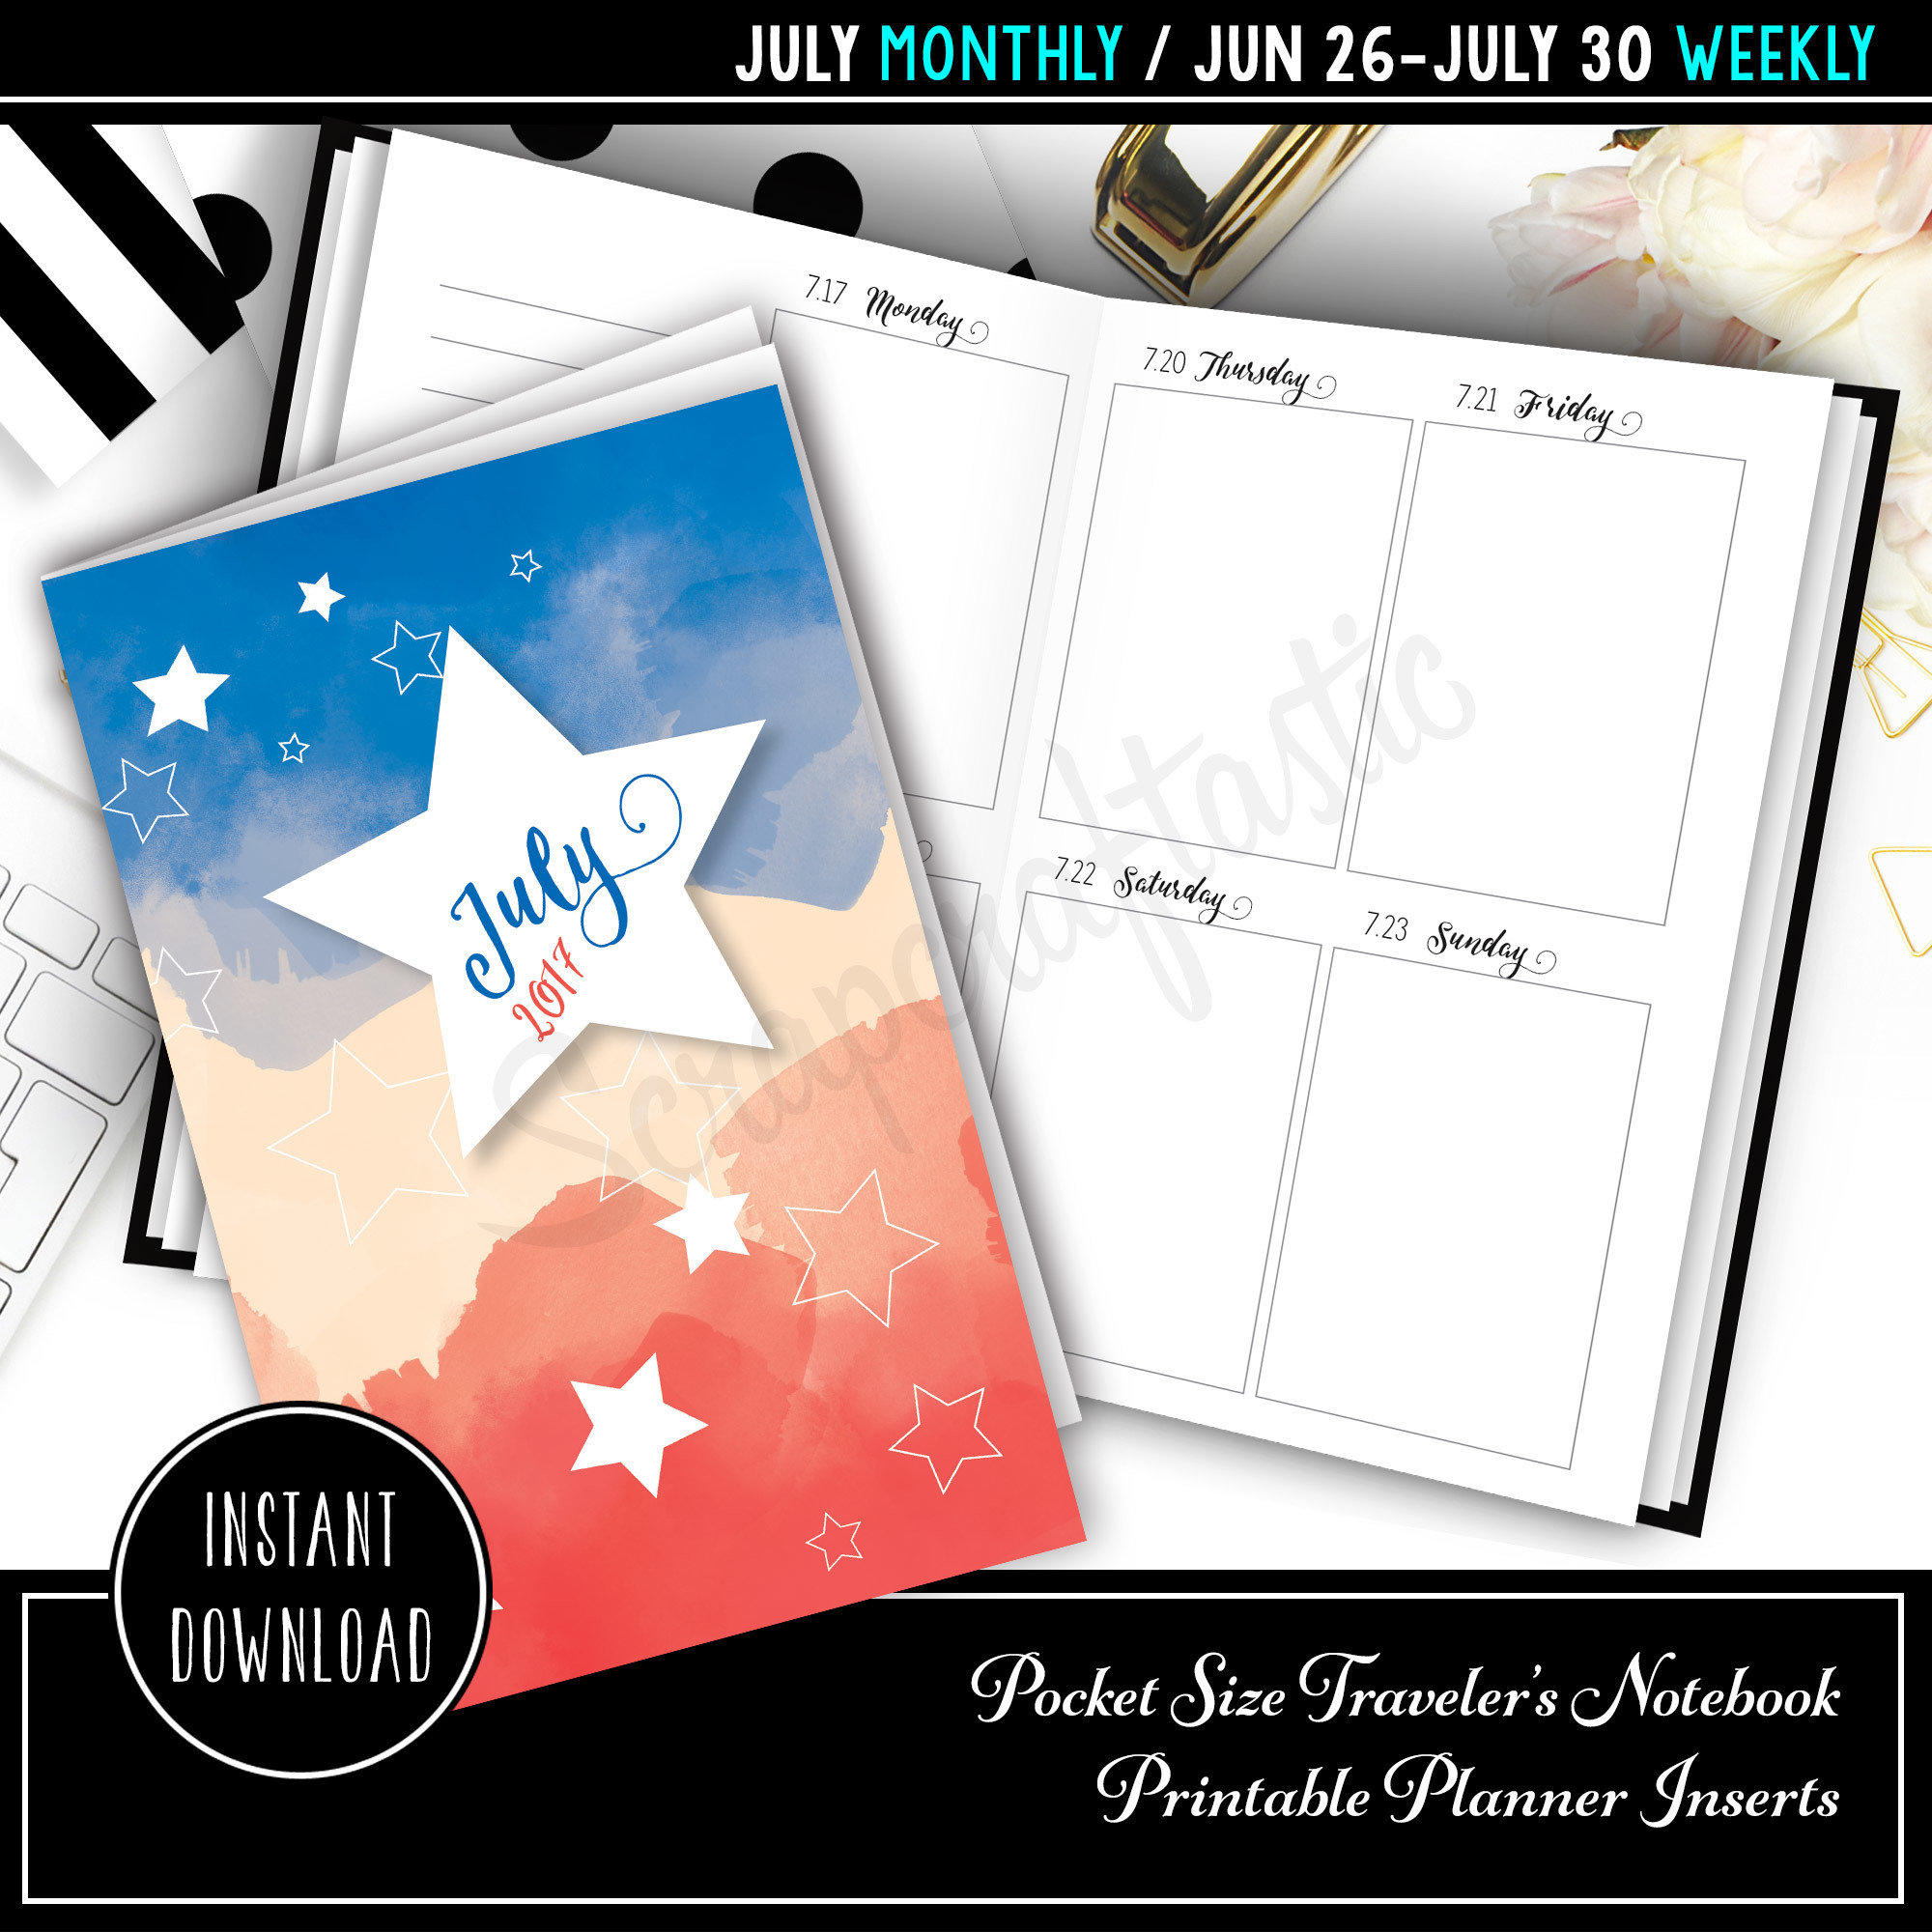 July 2017 Pocket Size Traveler's Notebook Printable Planner Inserts 10004